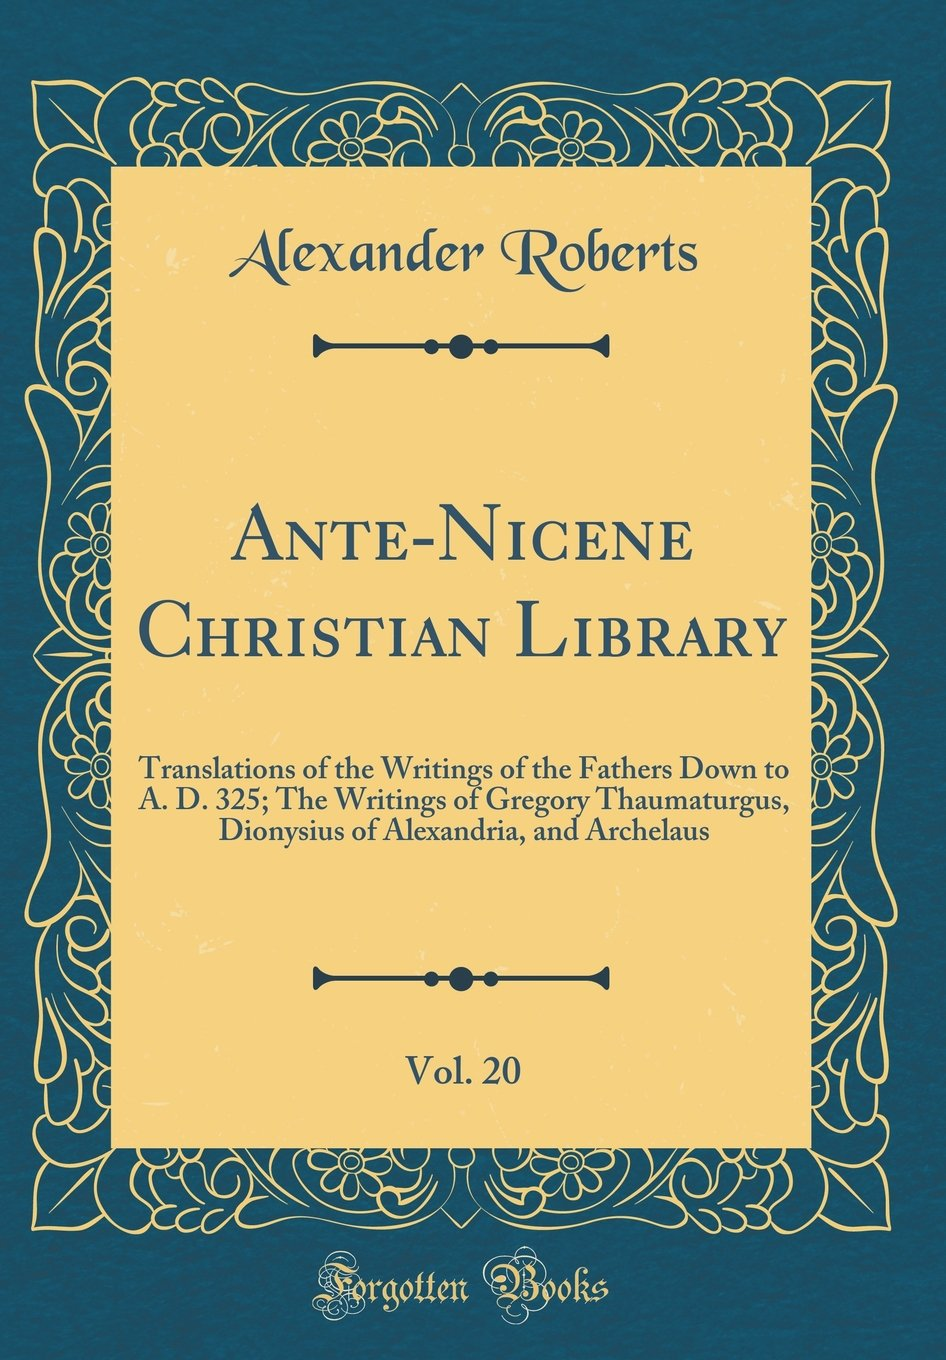 Download Ante-Nicene Christian Library, Vol. 20: Translations of the Writings of the Fathers Down to A. D. 325; The Writings of Gregory Thaumaturgus, Dionysius of Alexandria, and Archelaus (Classic Reprint) PDF